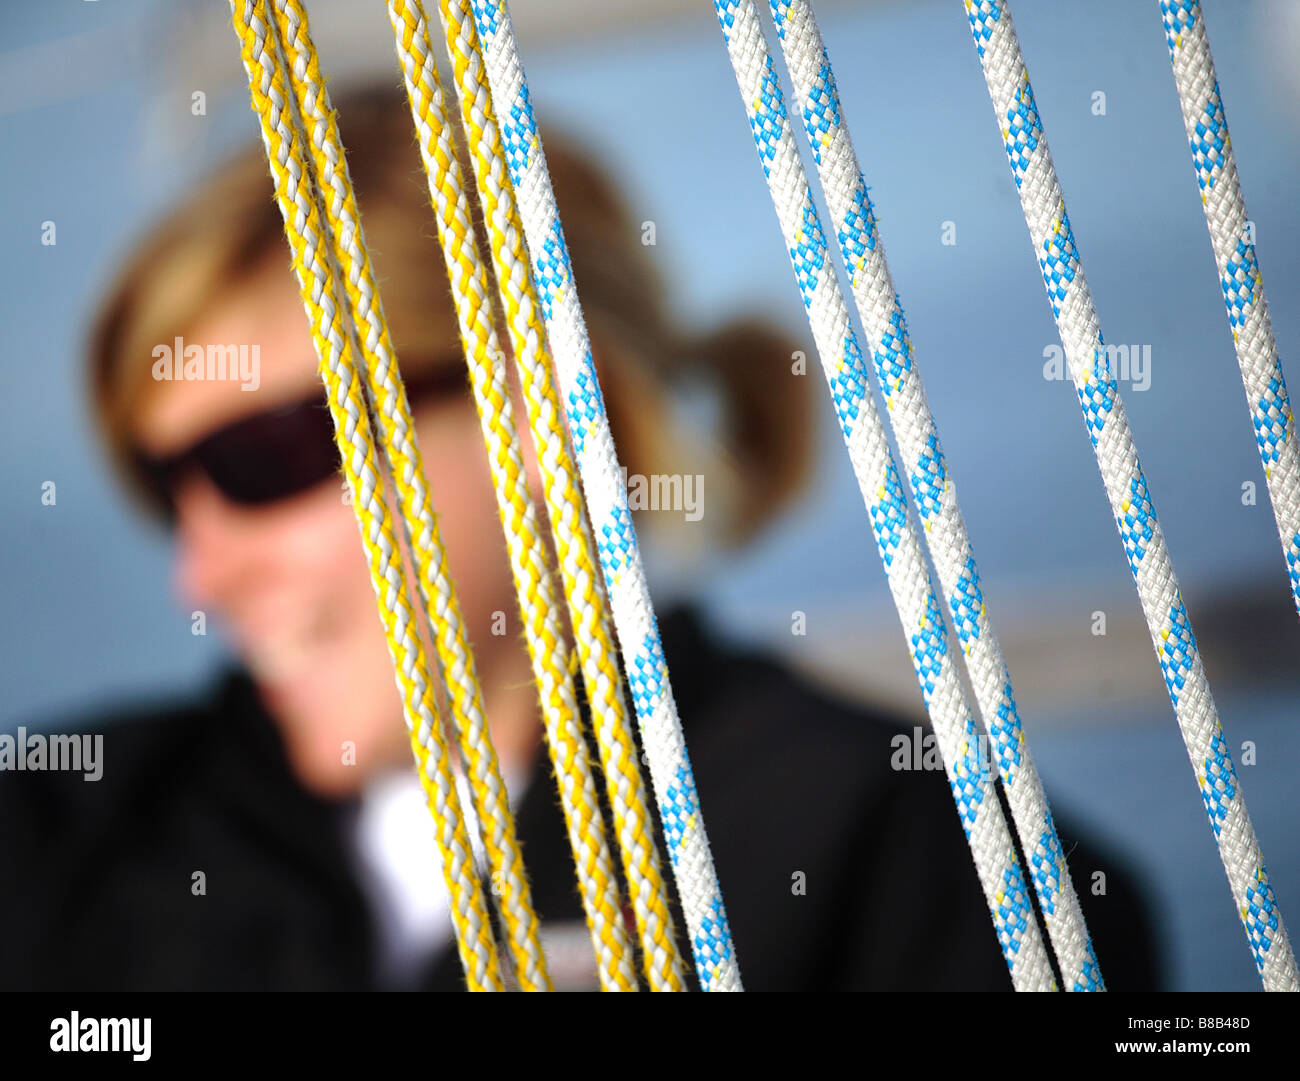 girl, European white female sailor  out of focus against rigging of a yacht. - Stock Image